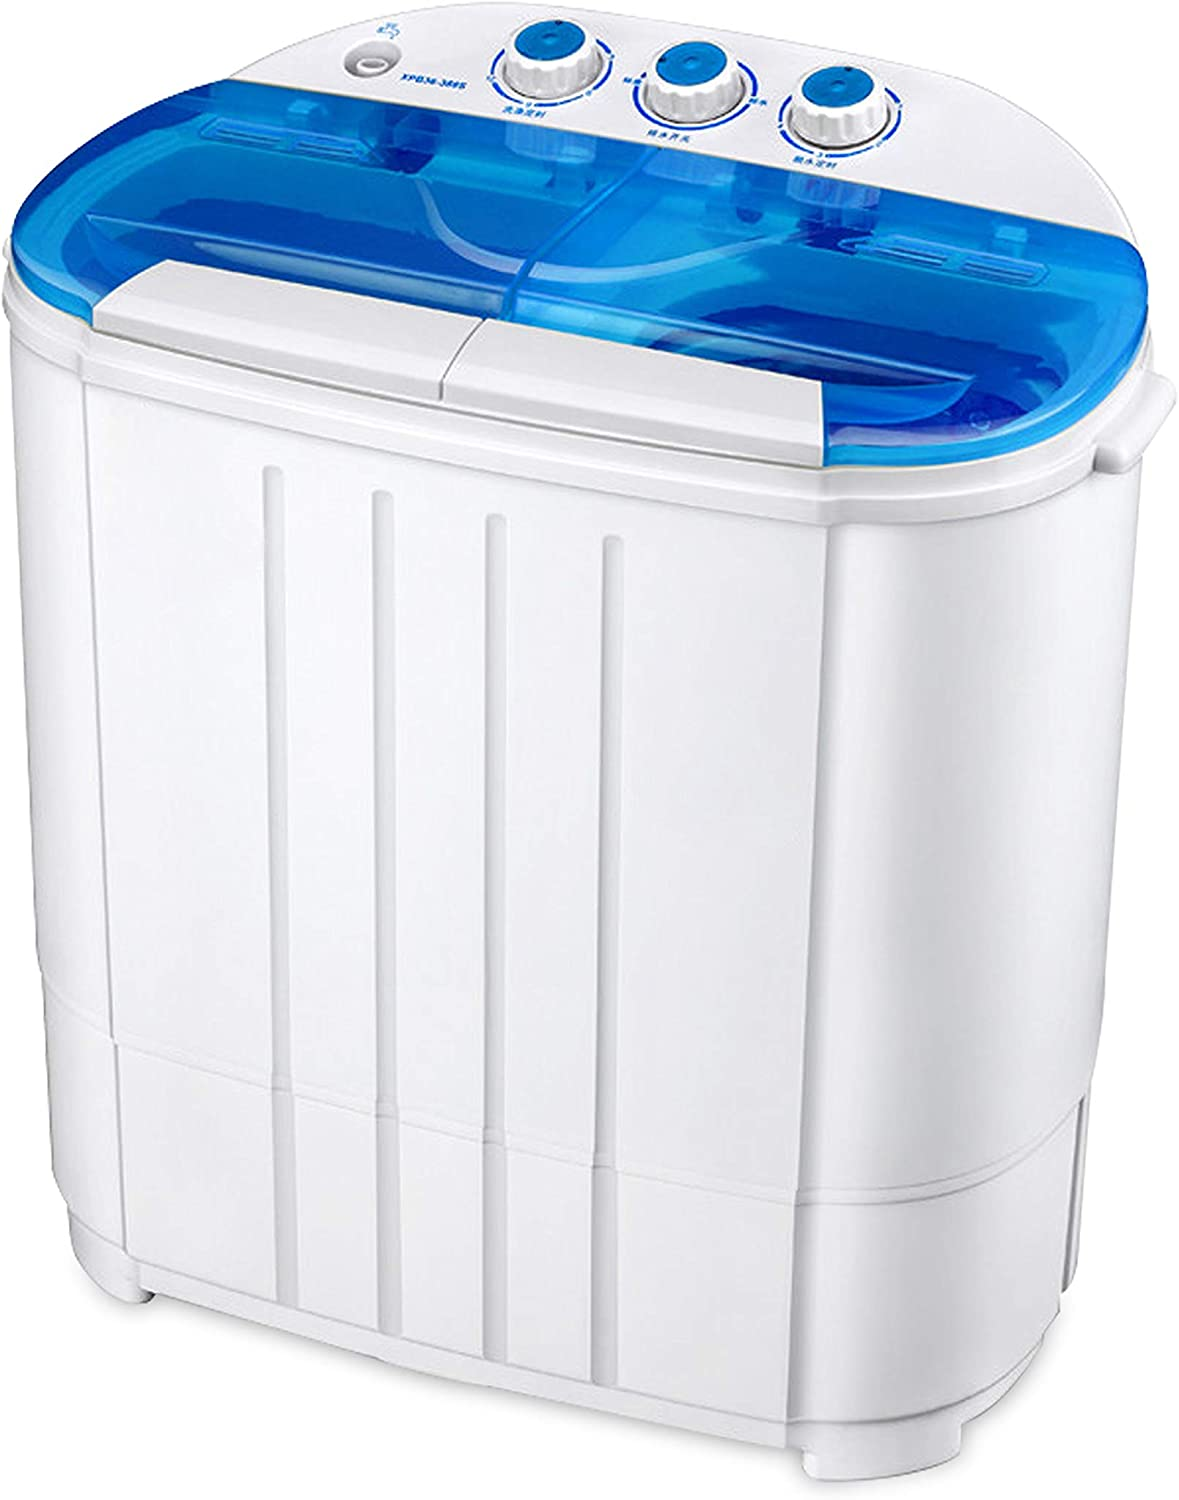 Jialili 【Ship from USA】 10L Mini Washing Machine with Foldable Tub Portable Personal Rotating Ultrasonic Turbines Washer for Camping Apartments Dorms RV Business Trip Blue